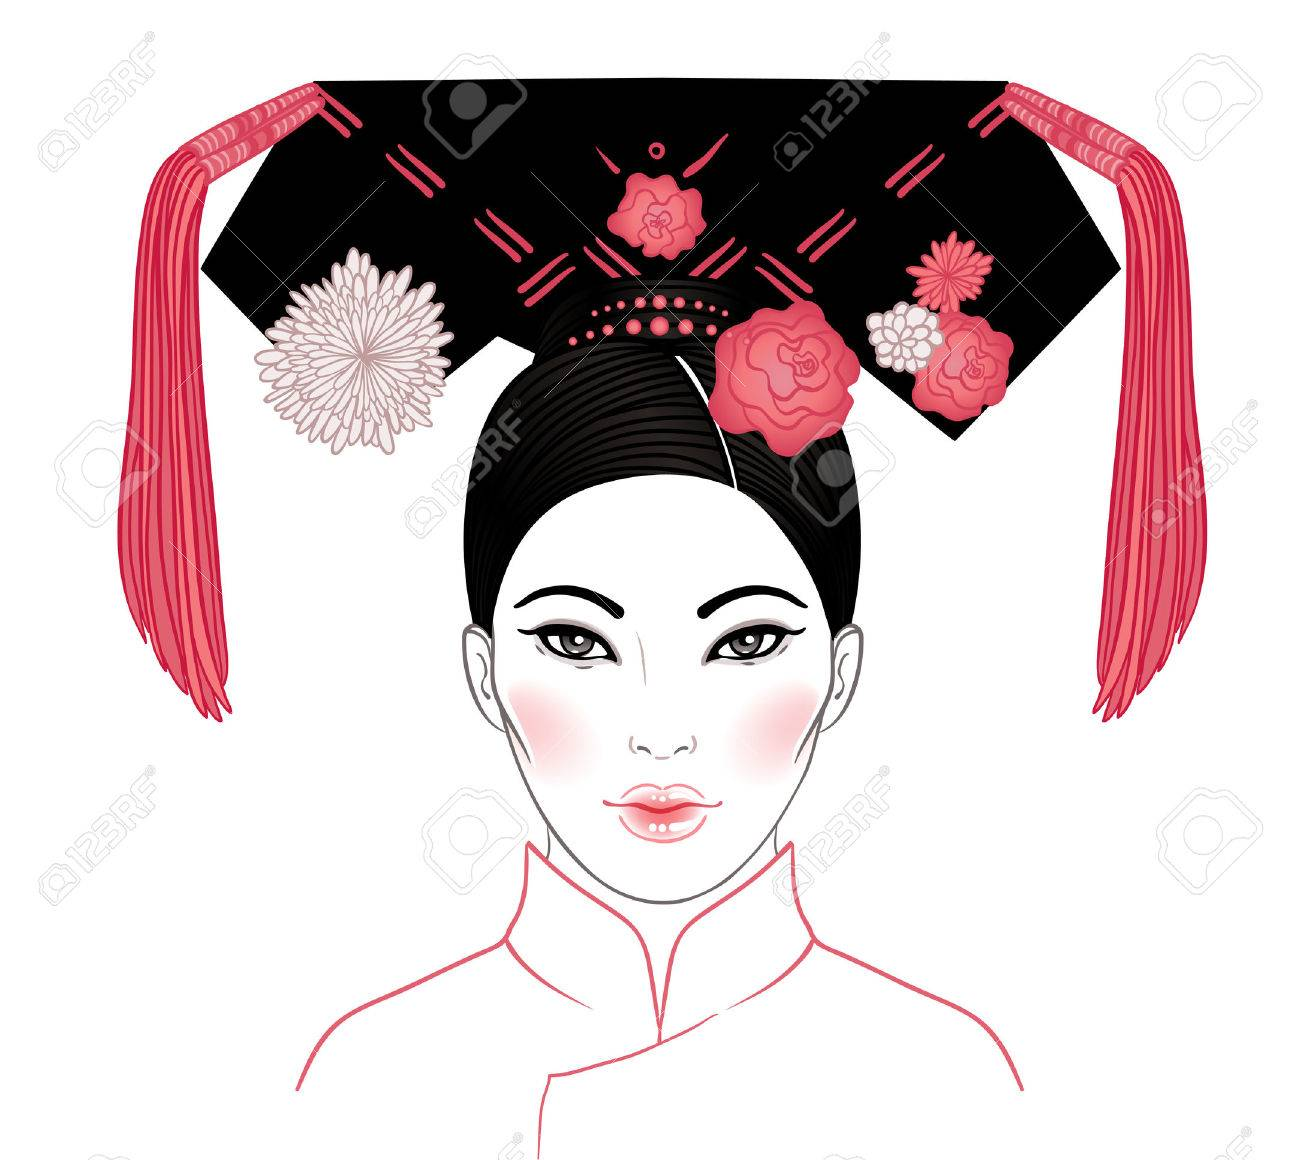 Noble Manchurian Woman of Qing Dynasty, 19th Century. Traditional Chinese hairstyle with a hair board, called double horns, decorated with flowers and tassels. Vector illustration isolated on white. - 79136857